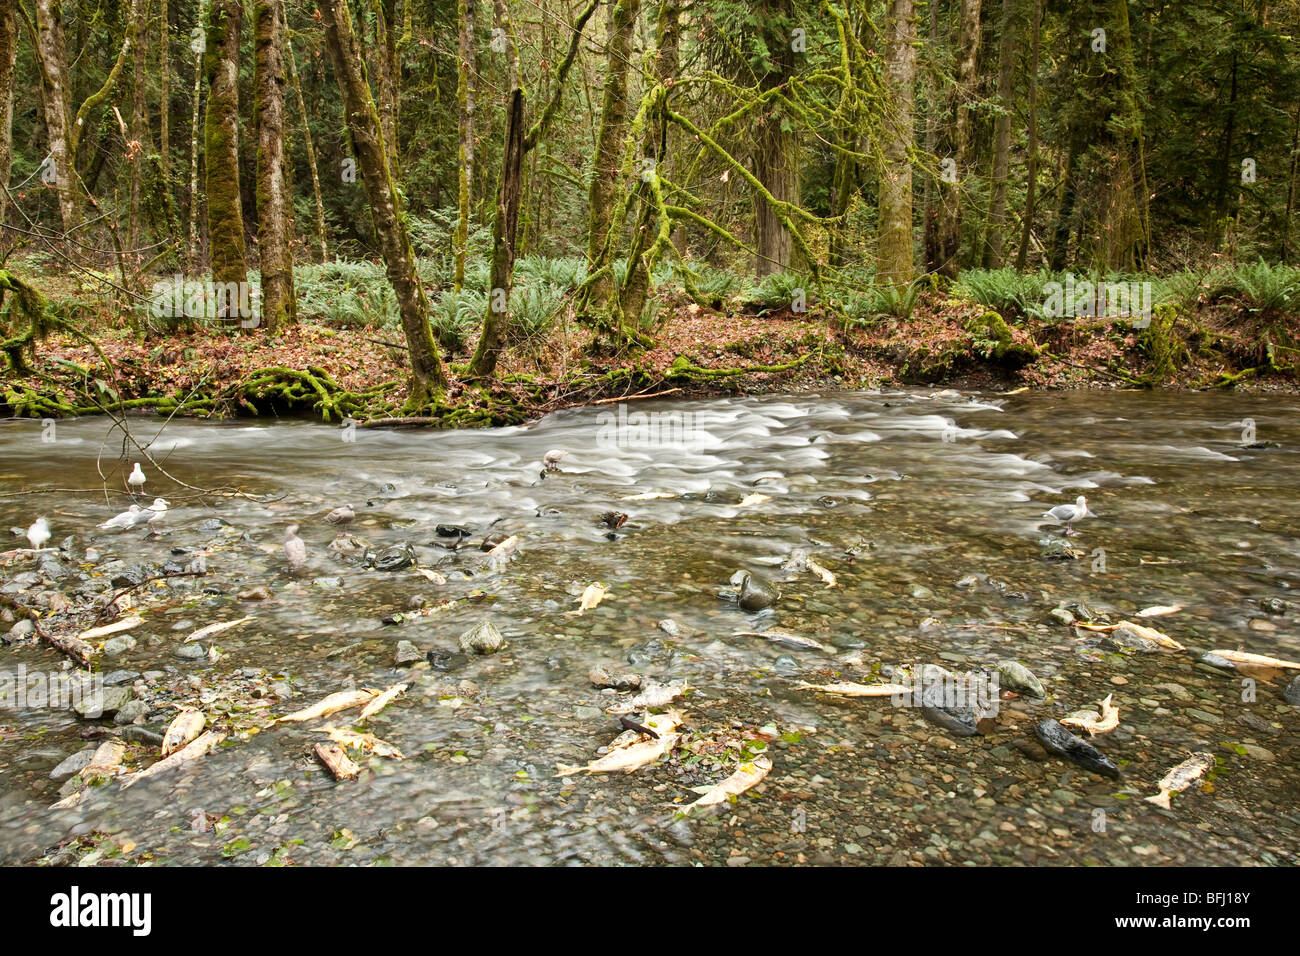 Salmon run at Goldstream Park. Vancouver Island, BC, Canada - Stock Image